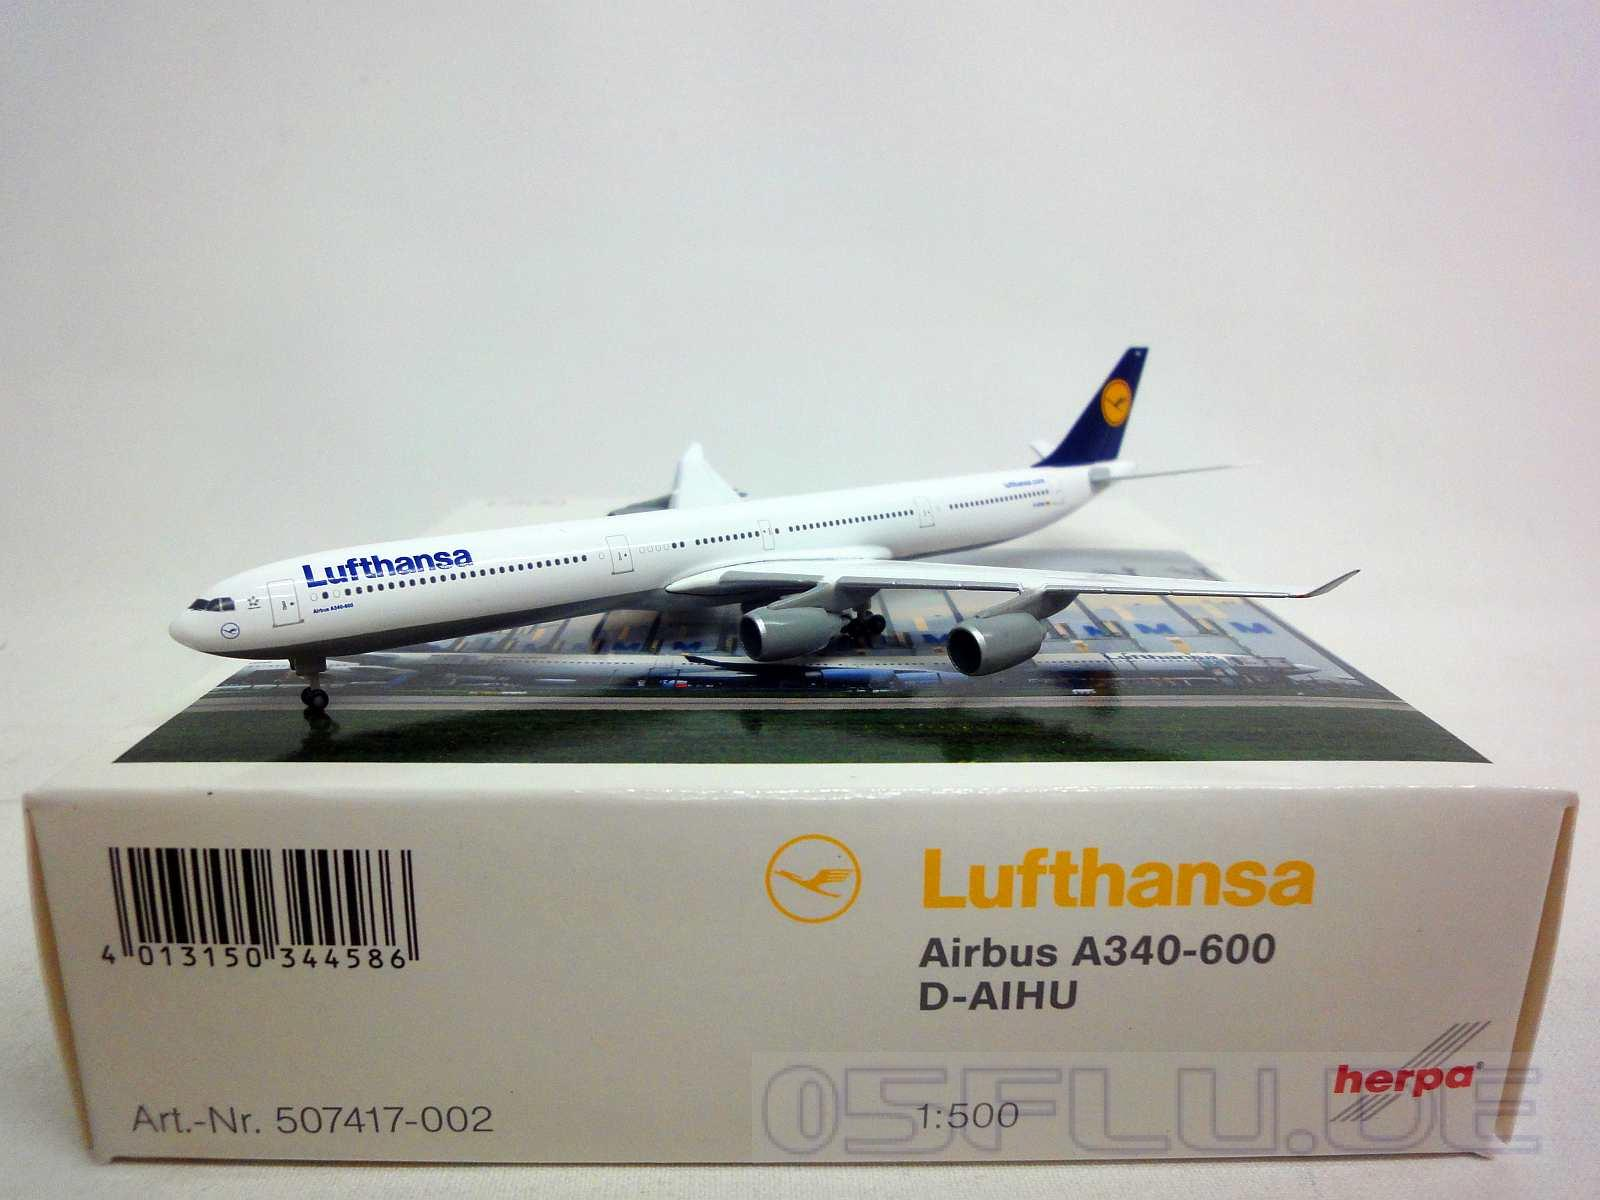 herpa 1 500 507417 002 lufthansa airbus a340 600 d aihu neu ebay. Black Bedroom Furniture Sets. Home Design Ideas